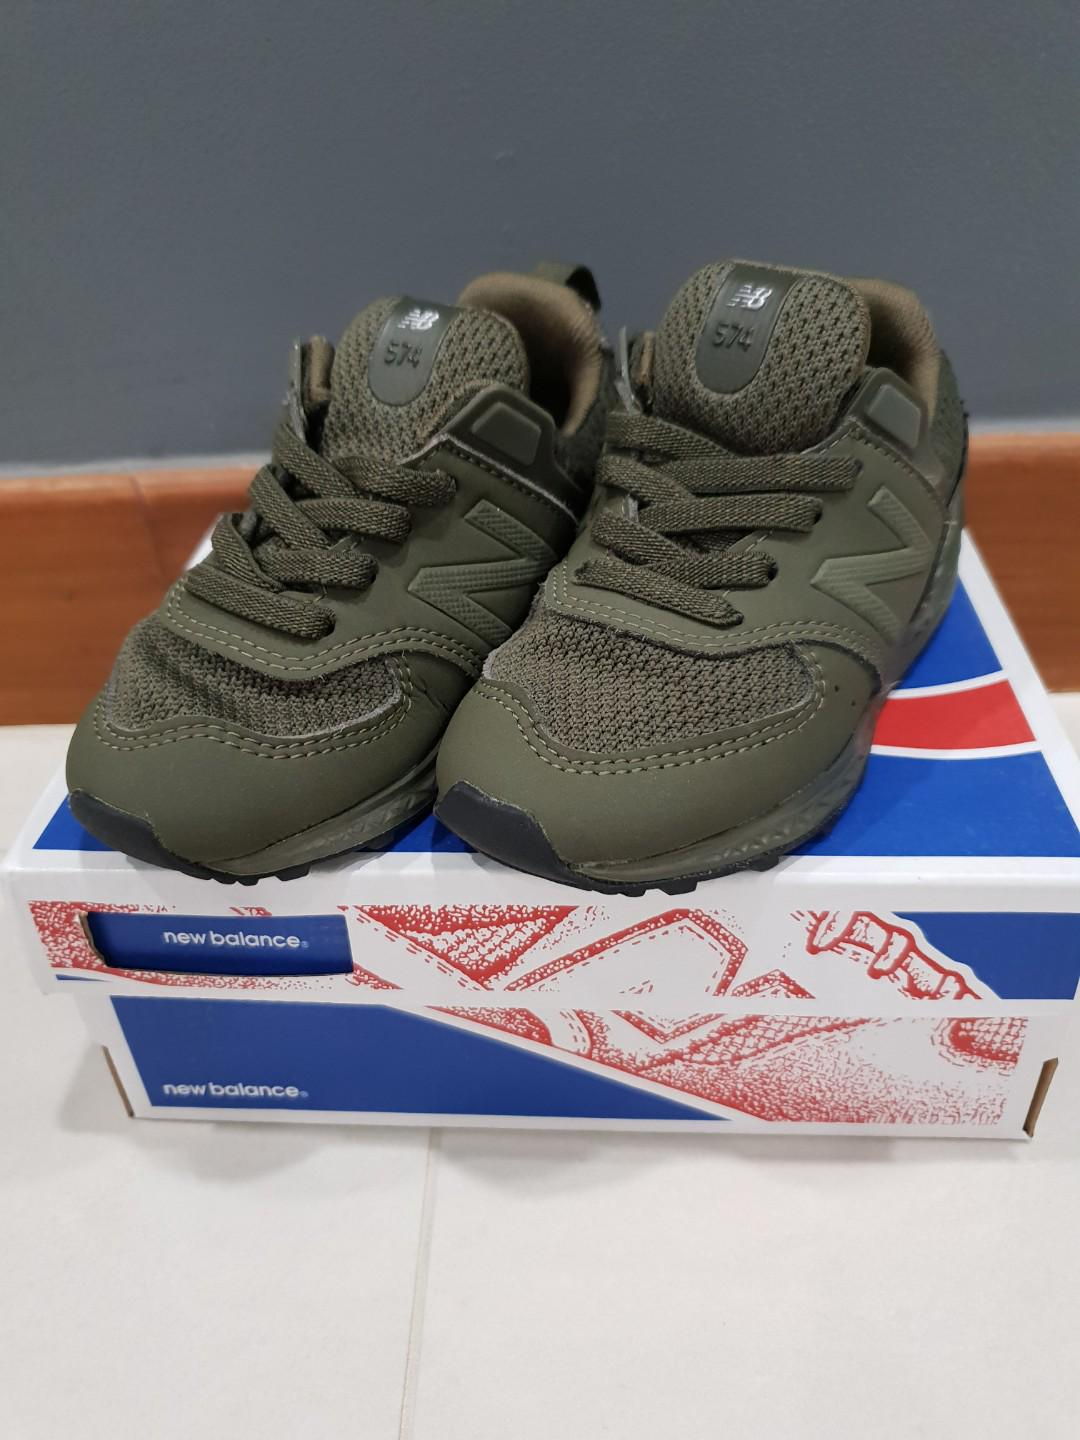 cheap for discount 5143f 6e7ad New Balance 574 - Olive Green, Babies & Kids, Boys' Apparel ...